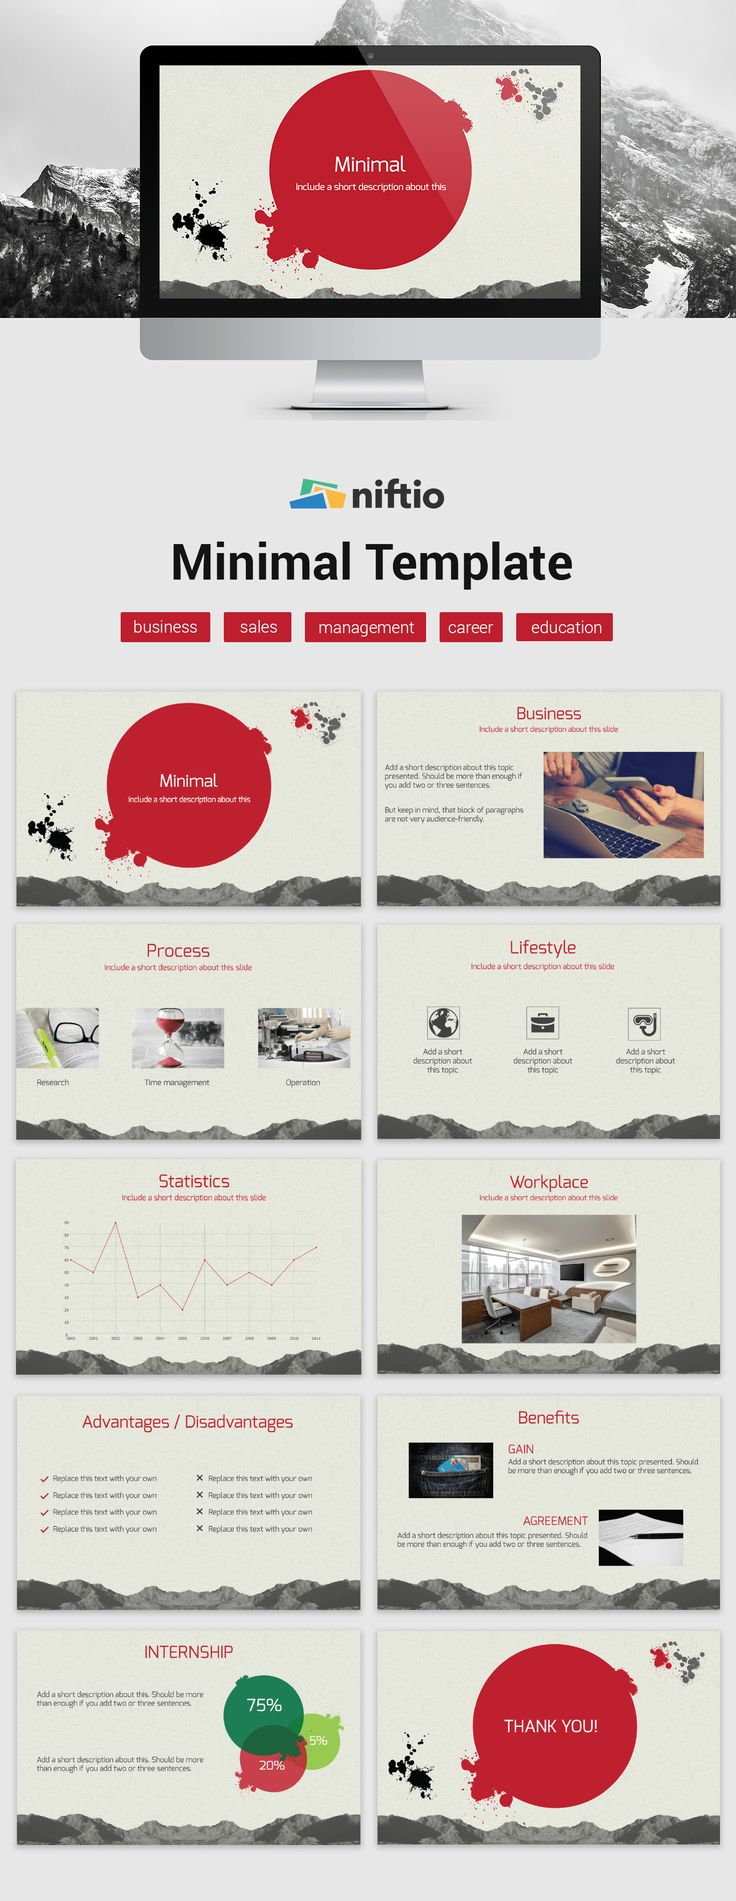 The U0027Minimalu0027 Presentation Template Can Help You Achieve That Professional  Look For Your Next Business Presentation Or Sales Pitch.